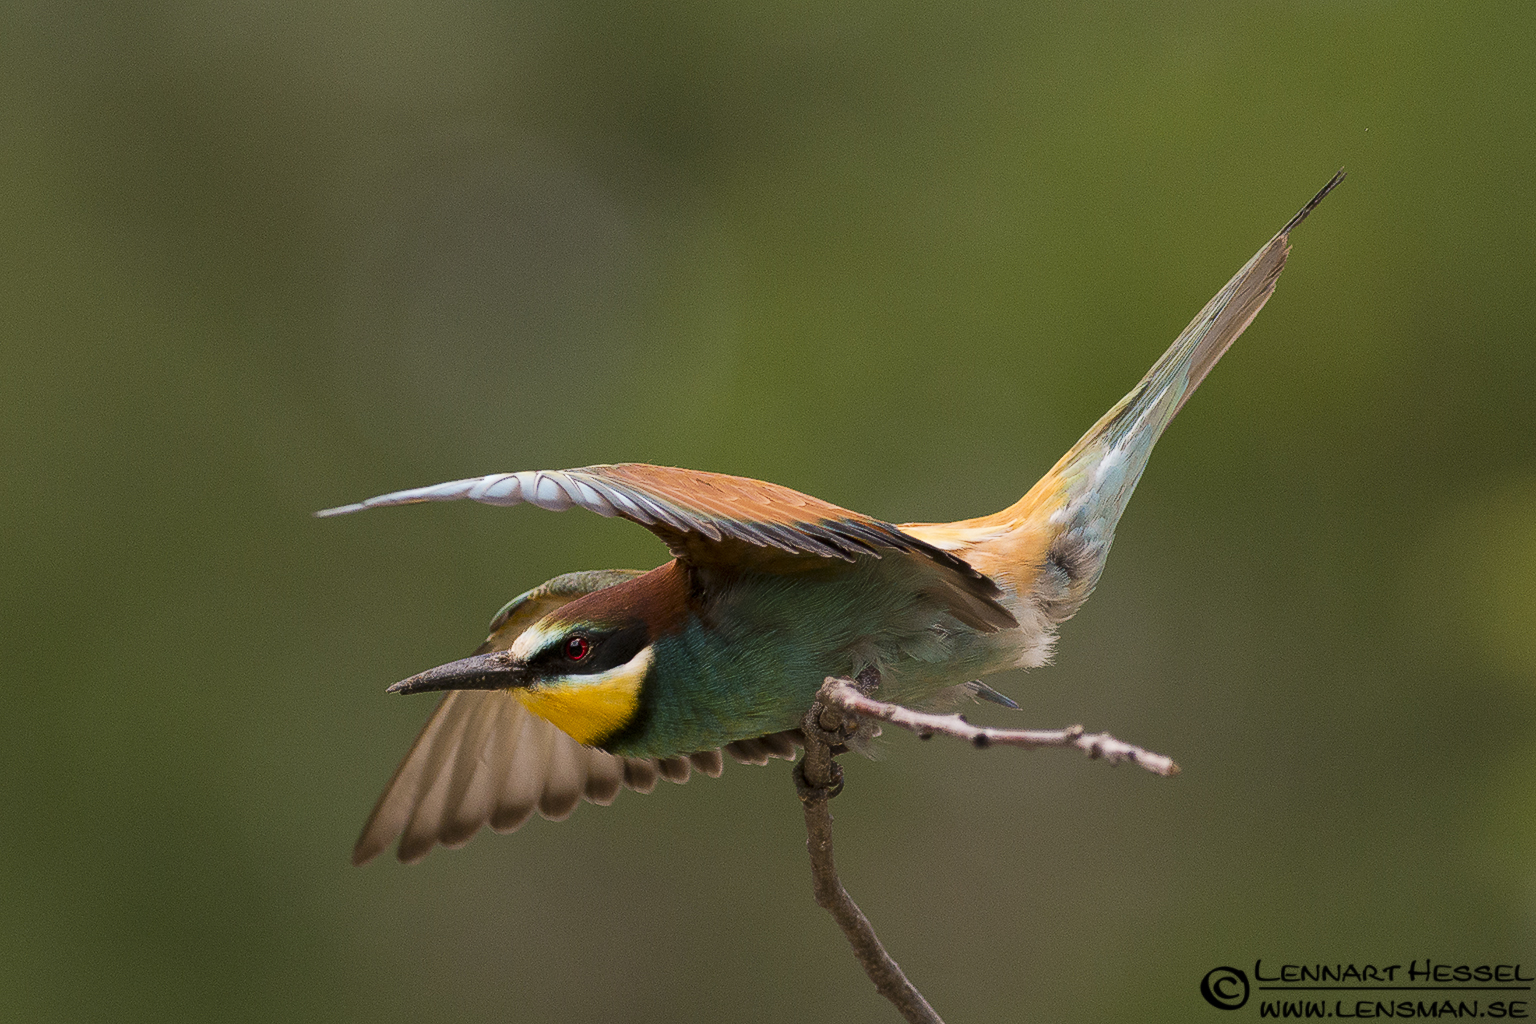 European Bee-eater balance act in Hungary